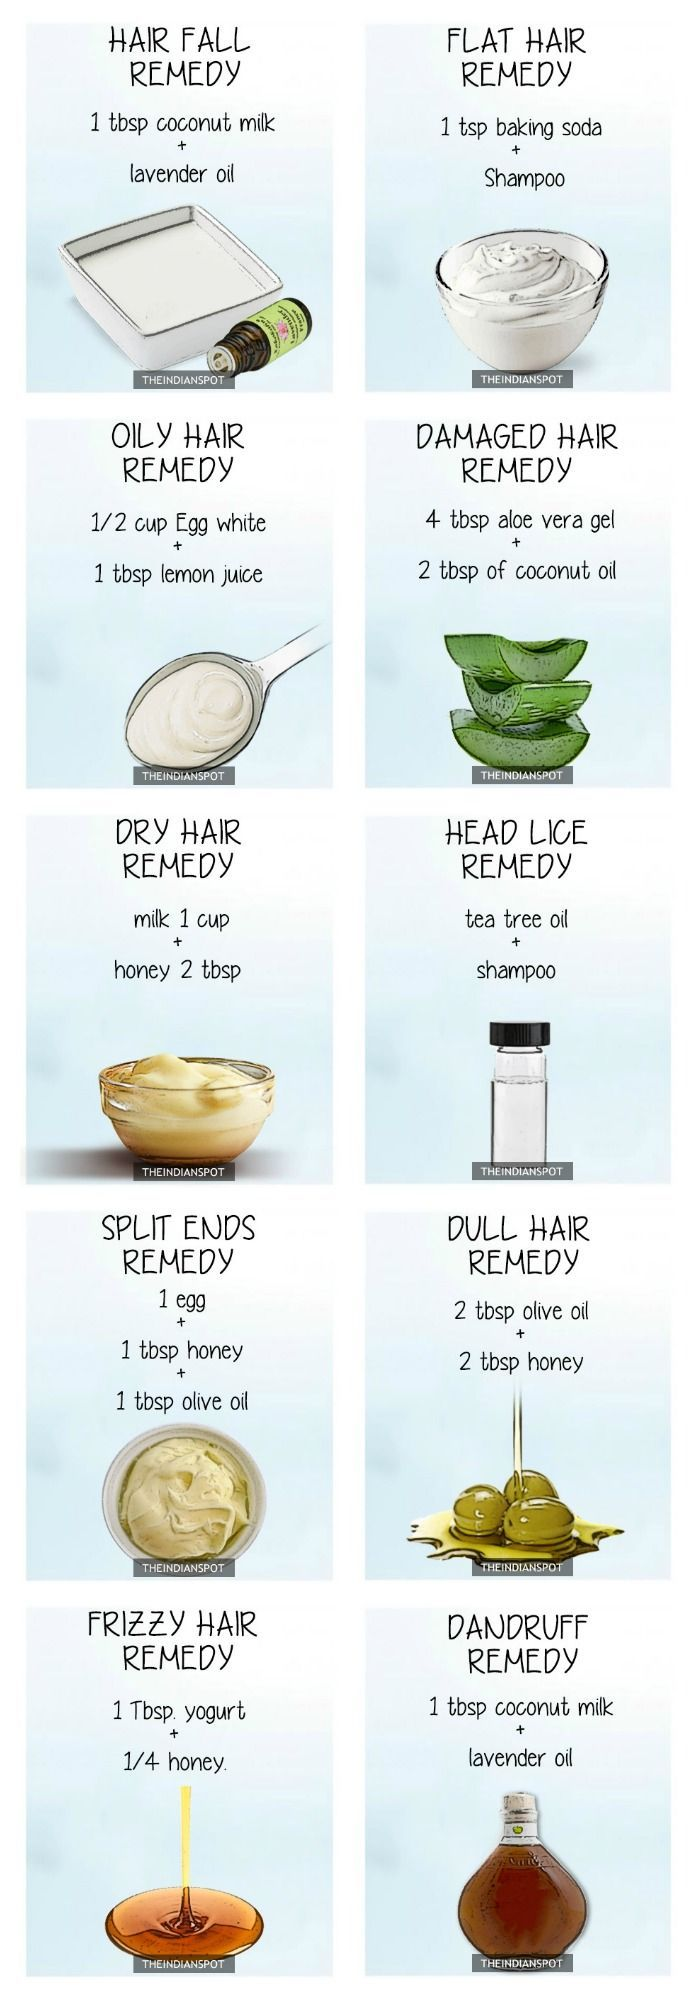 TOP 10 NATURAL REMEDIES FOR EVERY HAIR PROBLEM #haircare